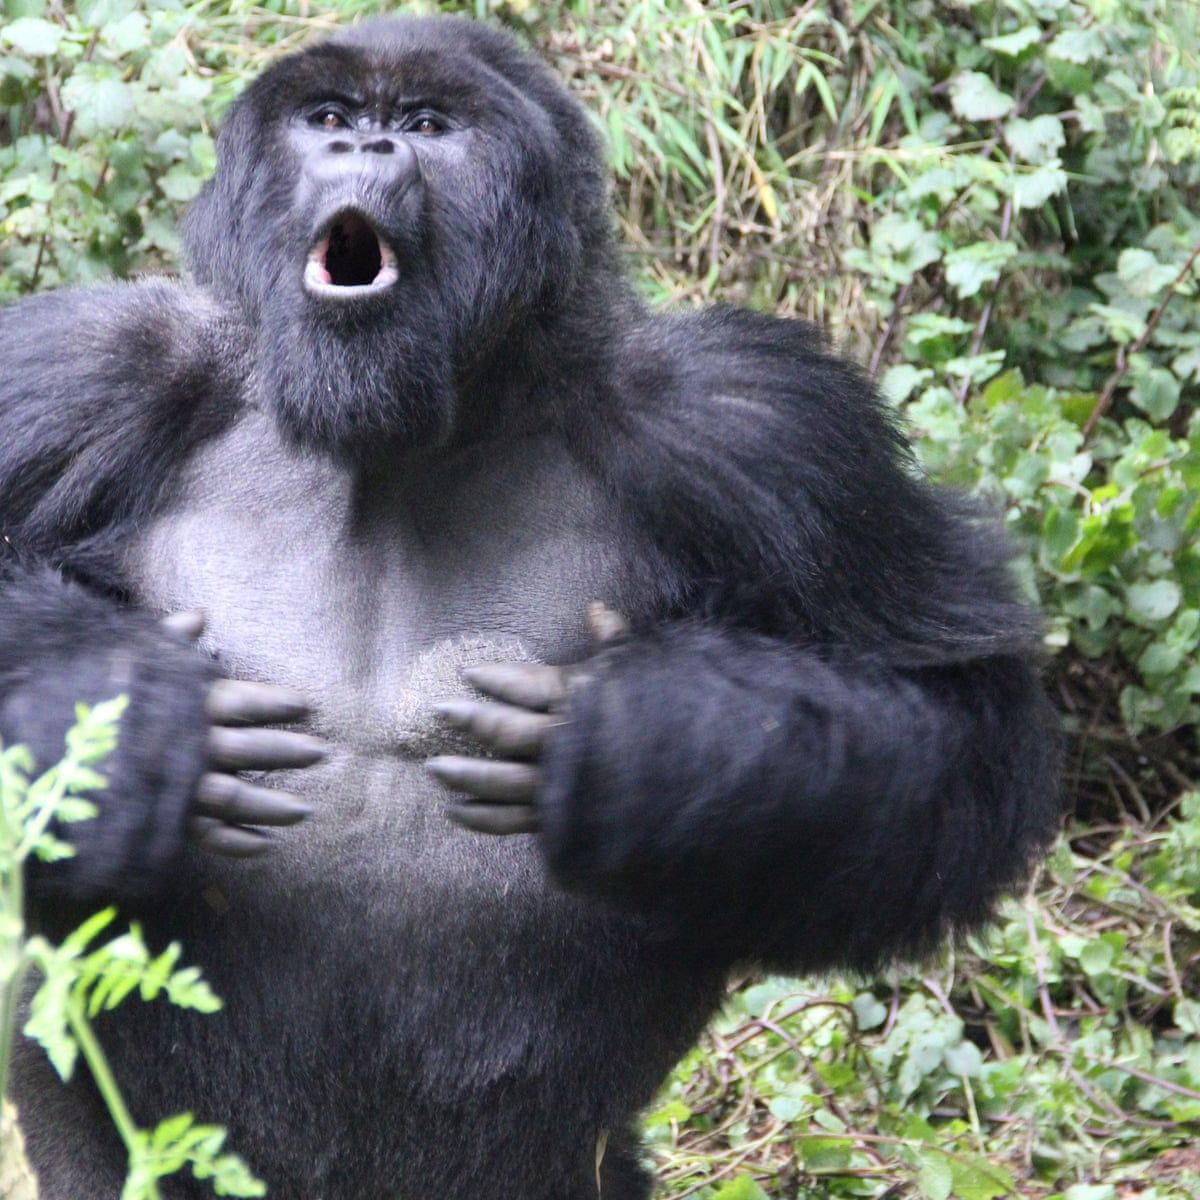 15 year old boy fights 500 lbs gorilla to save his cat